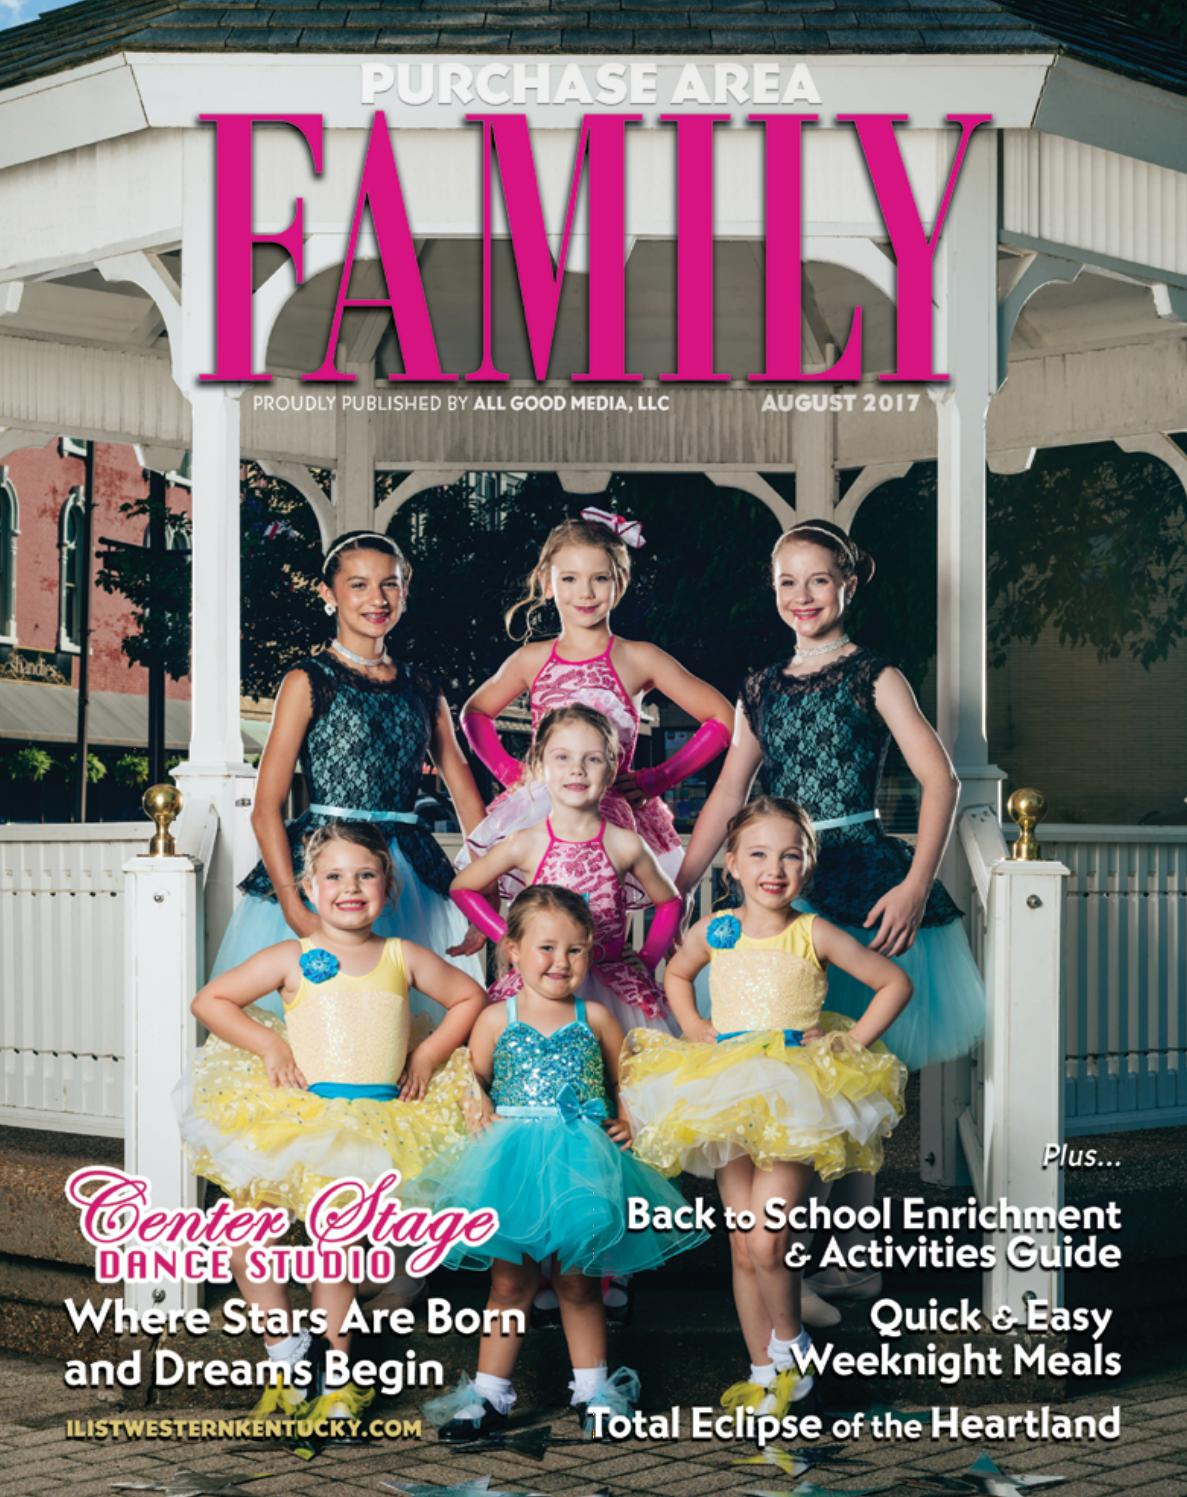 485e4c02b Purchase Area Family Magazine August 2017 by Purchase Area Family ...